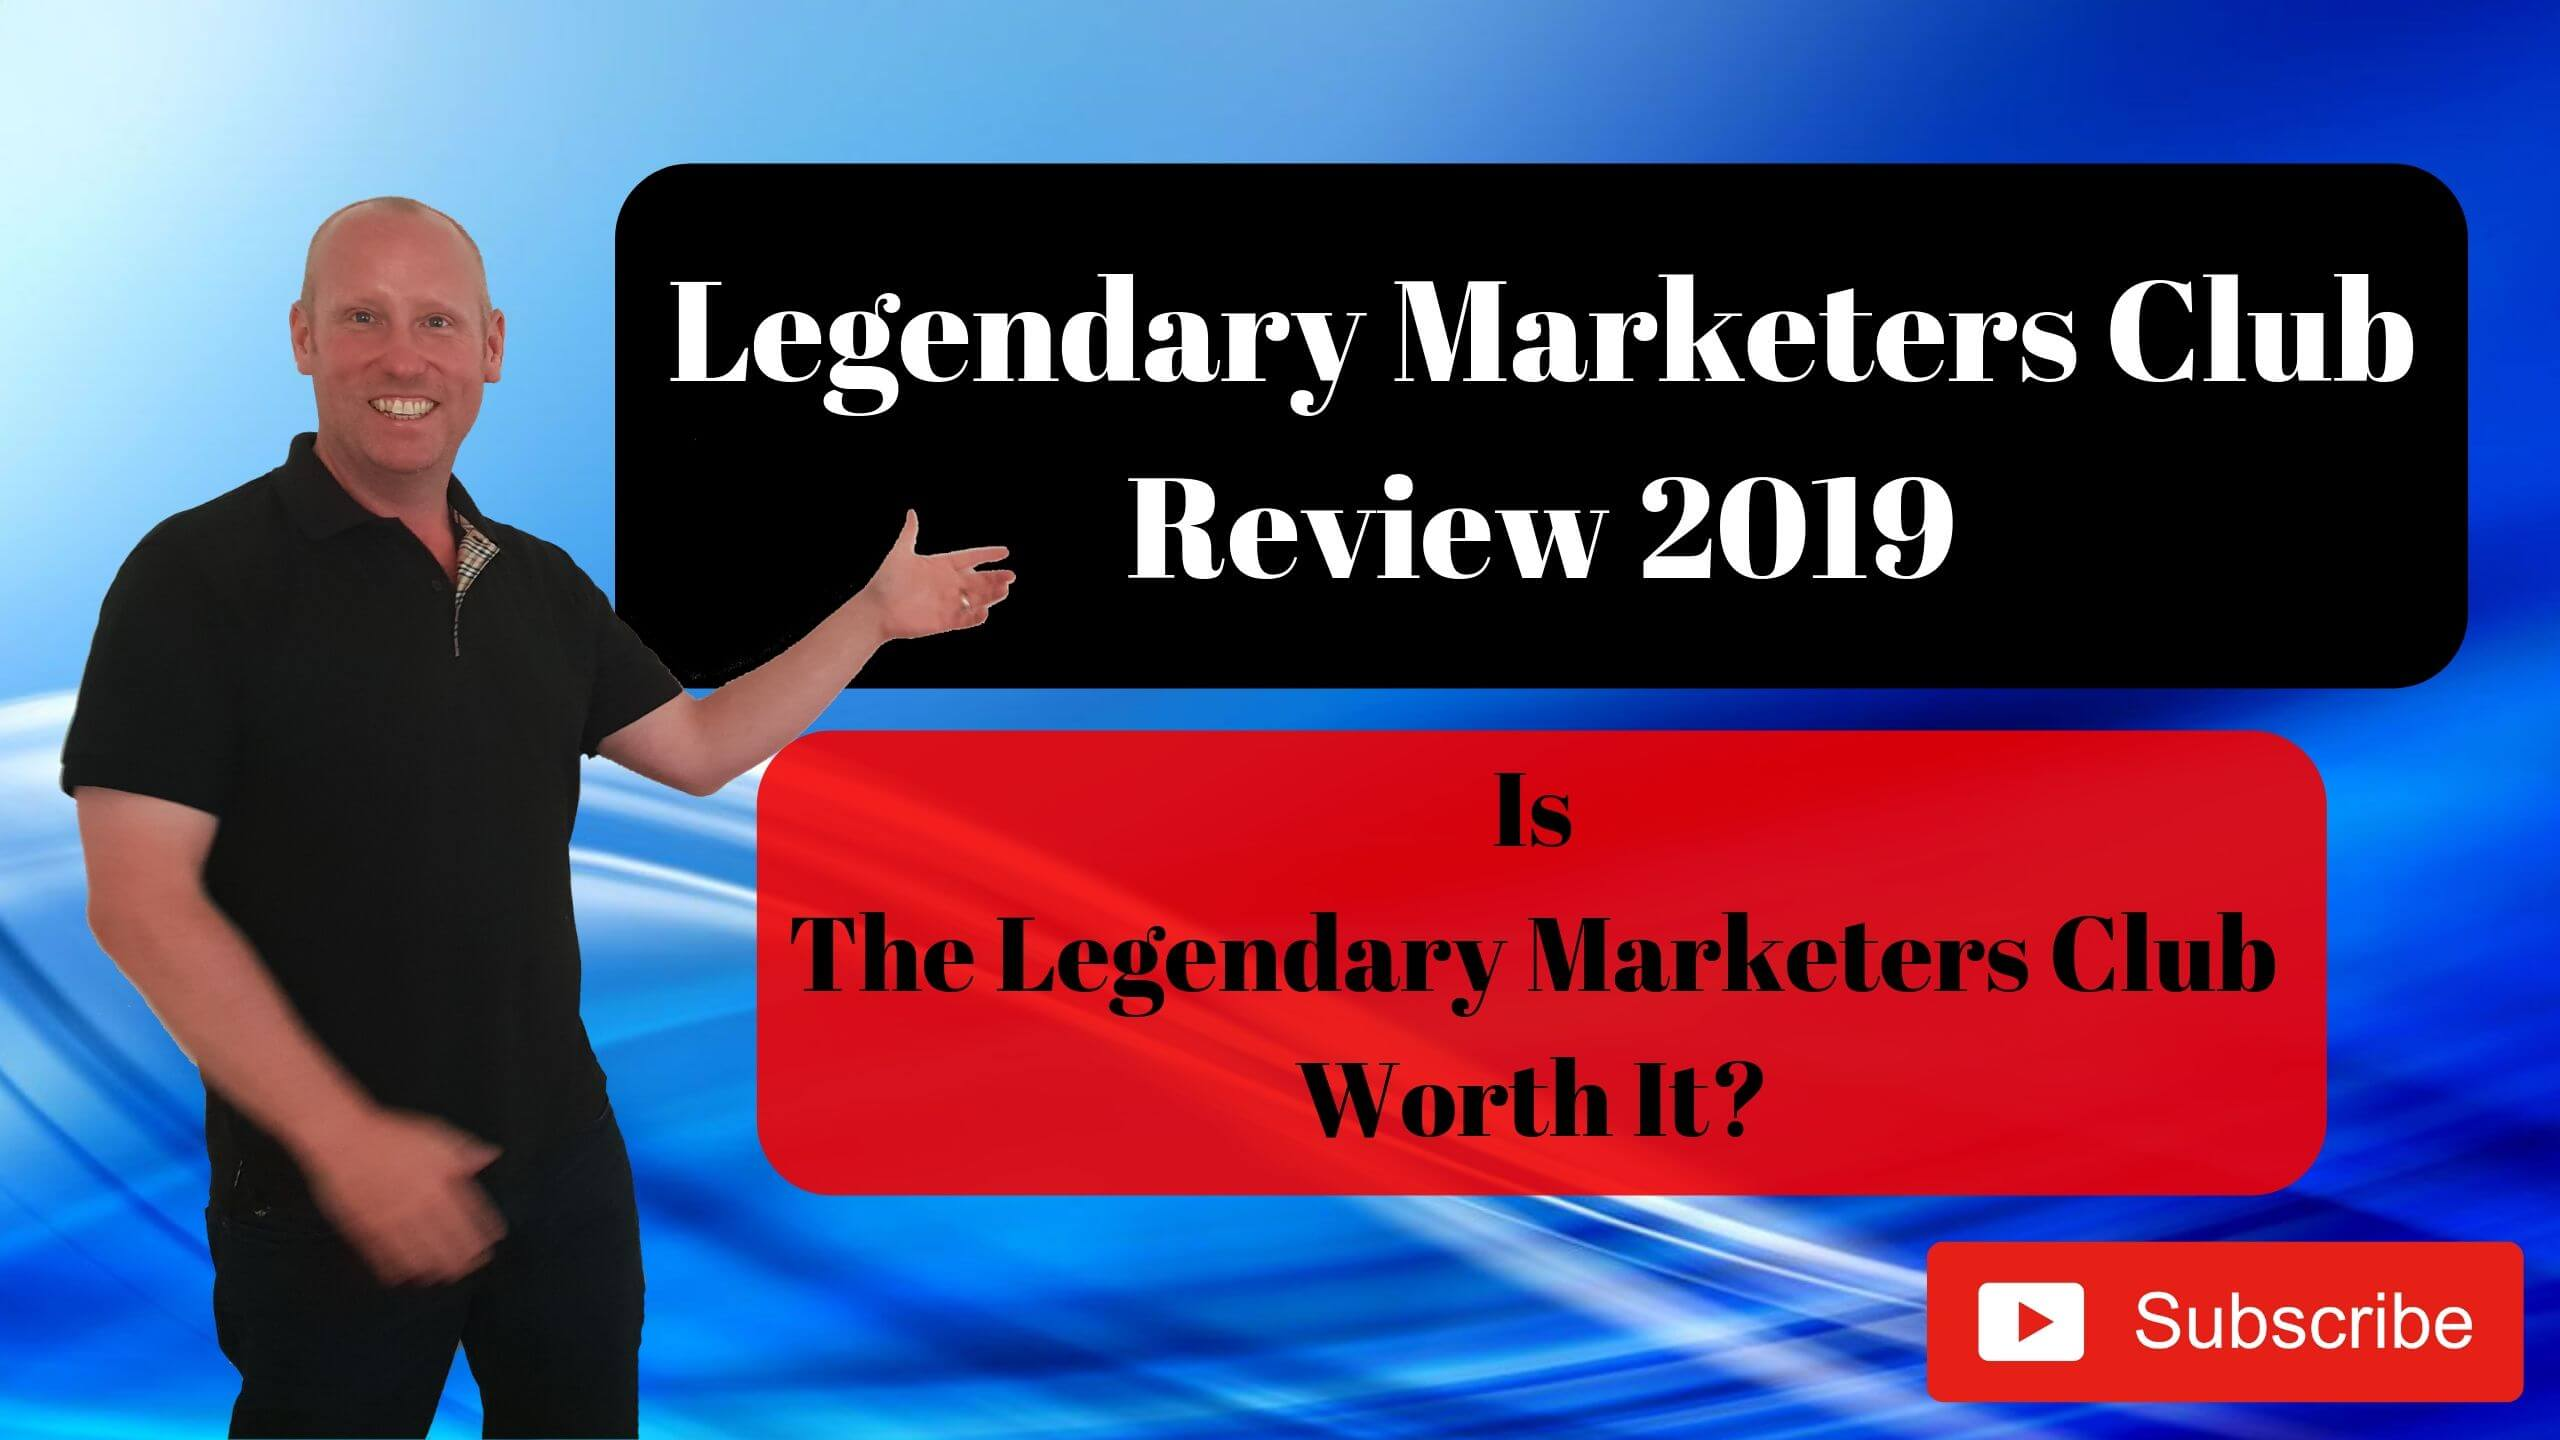 Internet Marketing Program Legendary Marketer Extended Warranty On